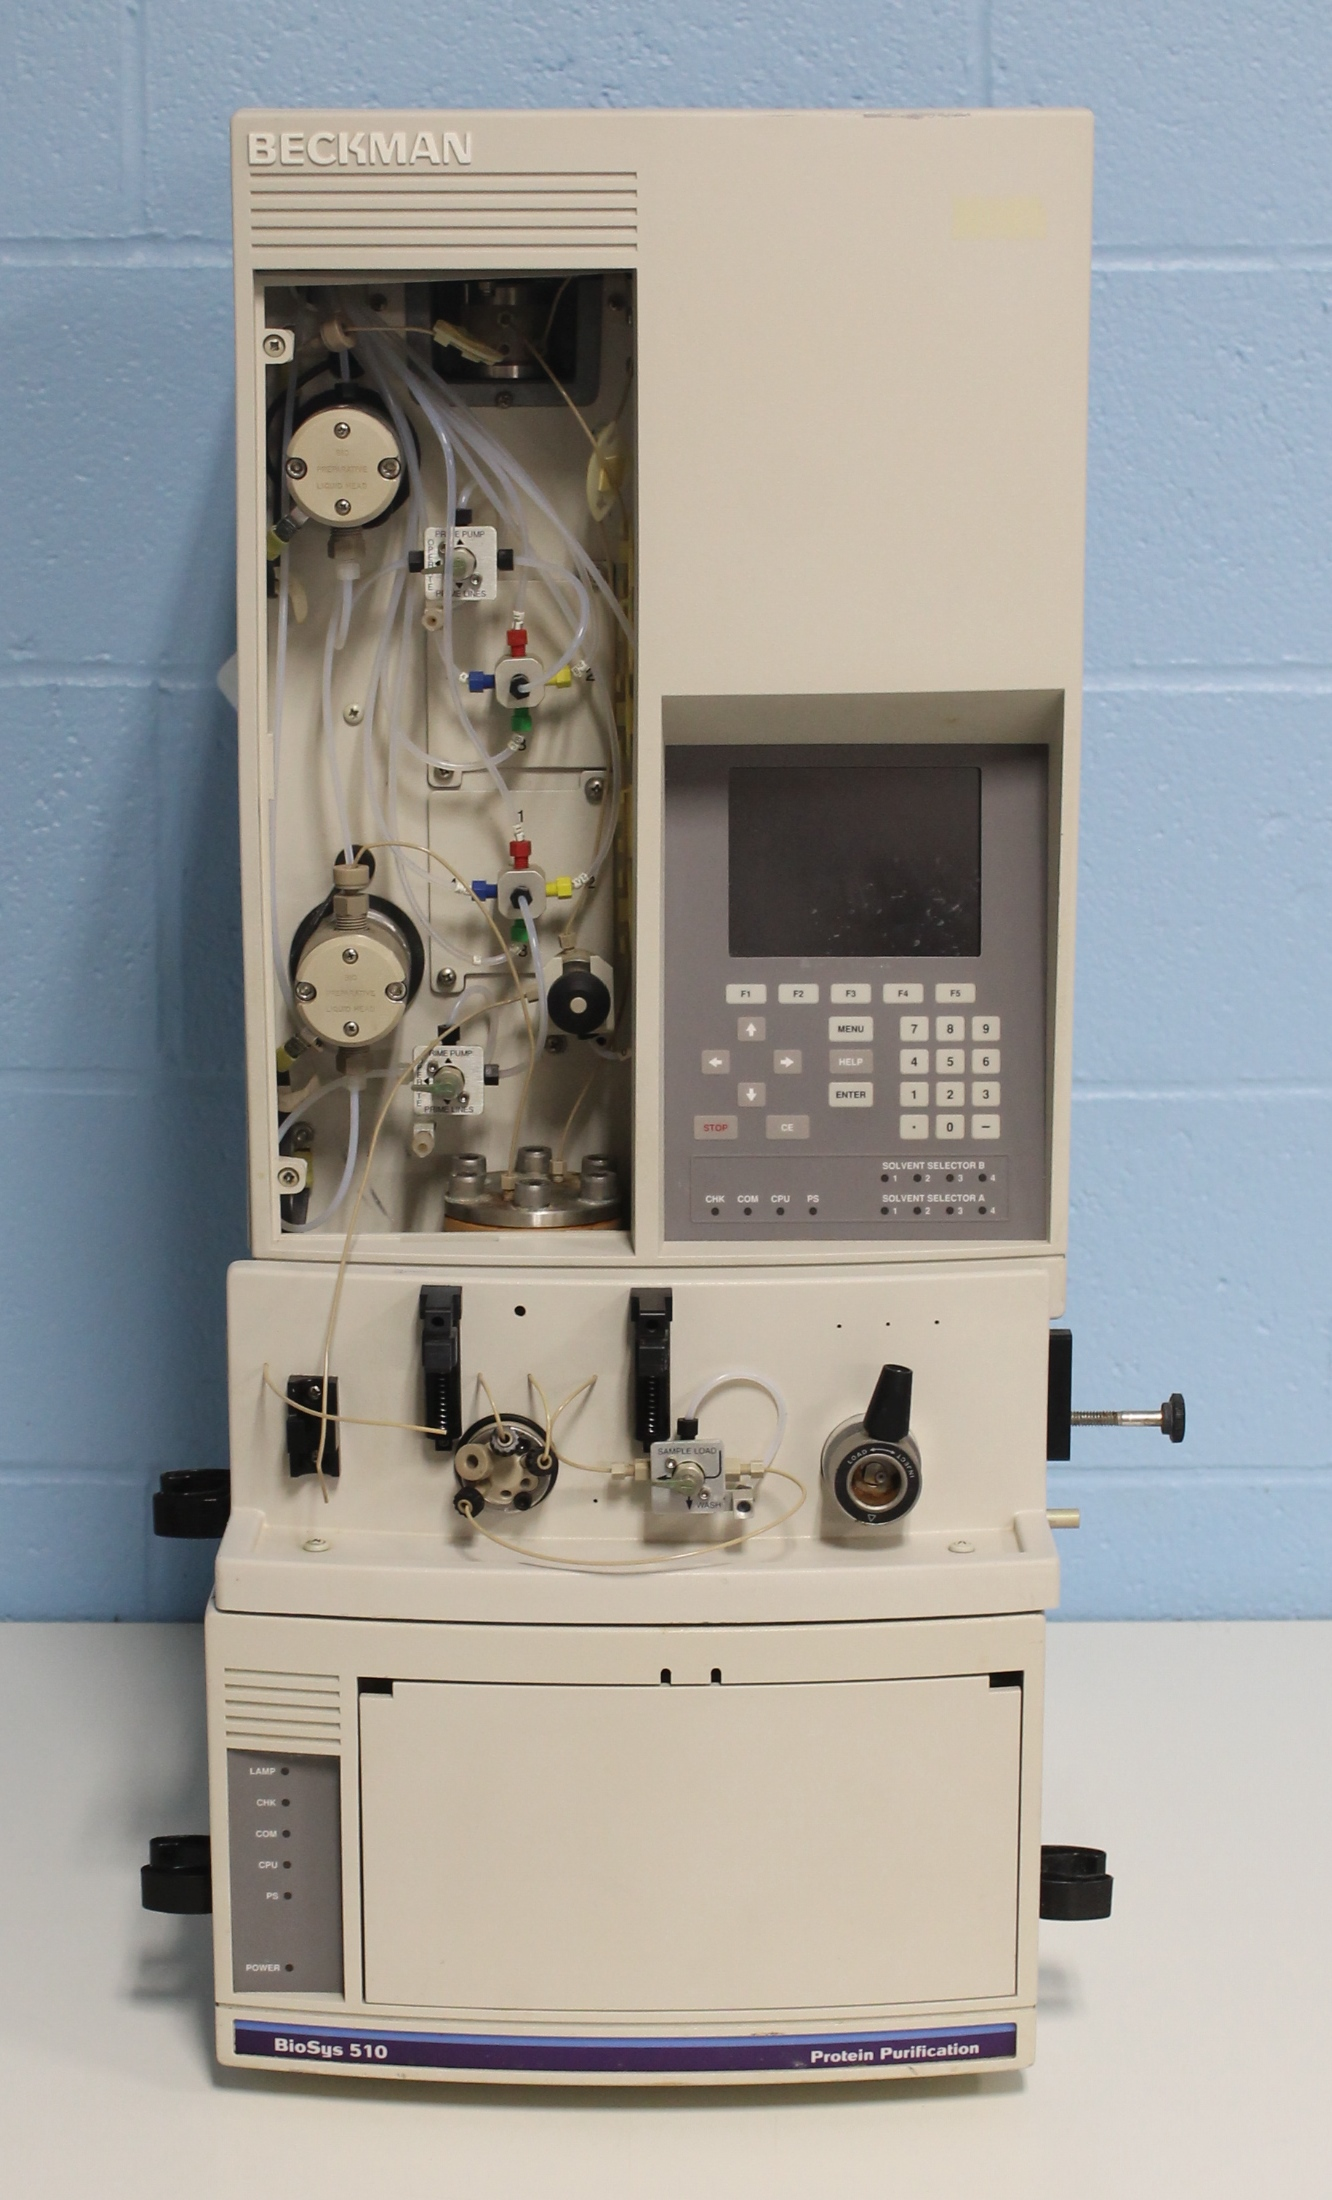 Beckman Coulter BioSys 510 Protein Purification System DNA Analyzer Image